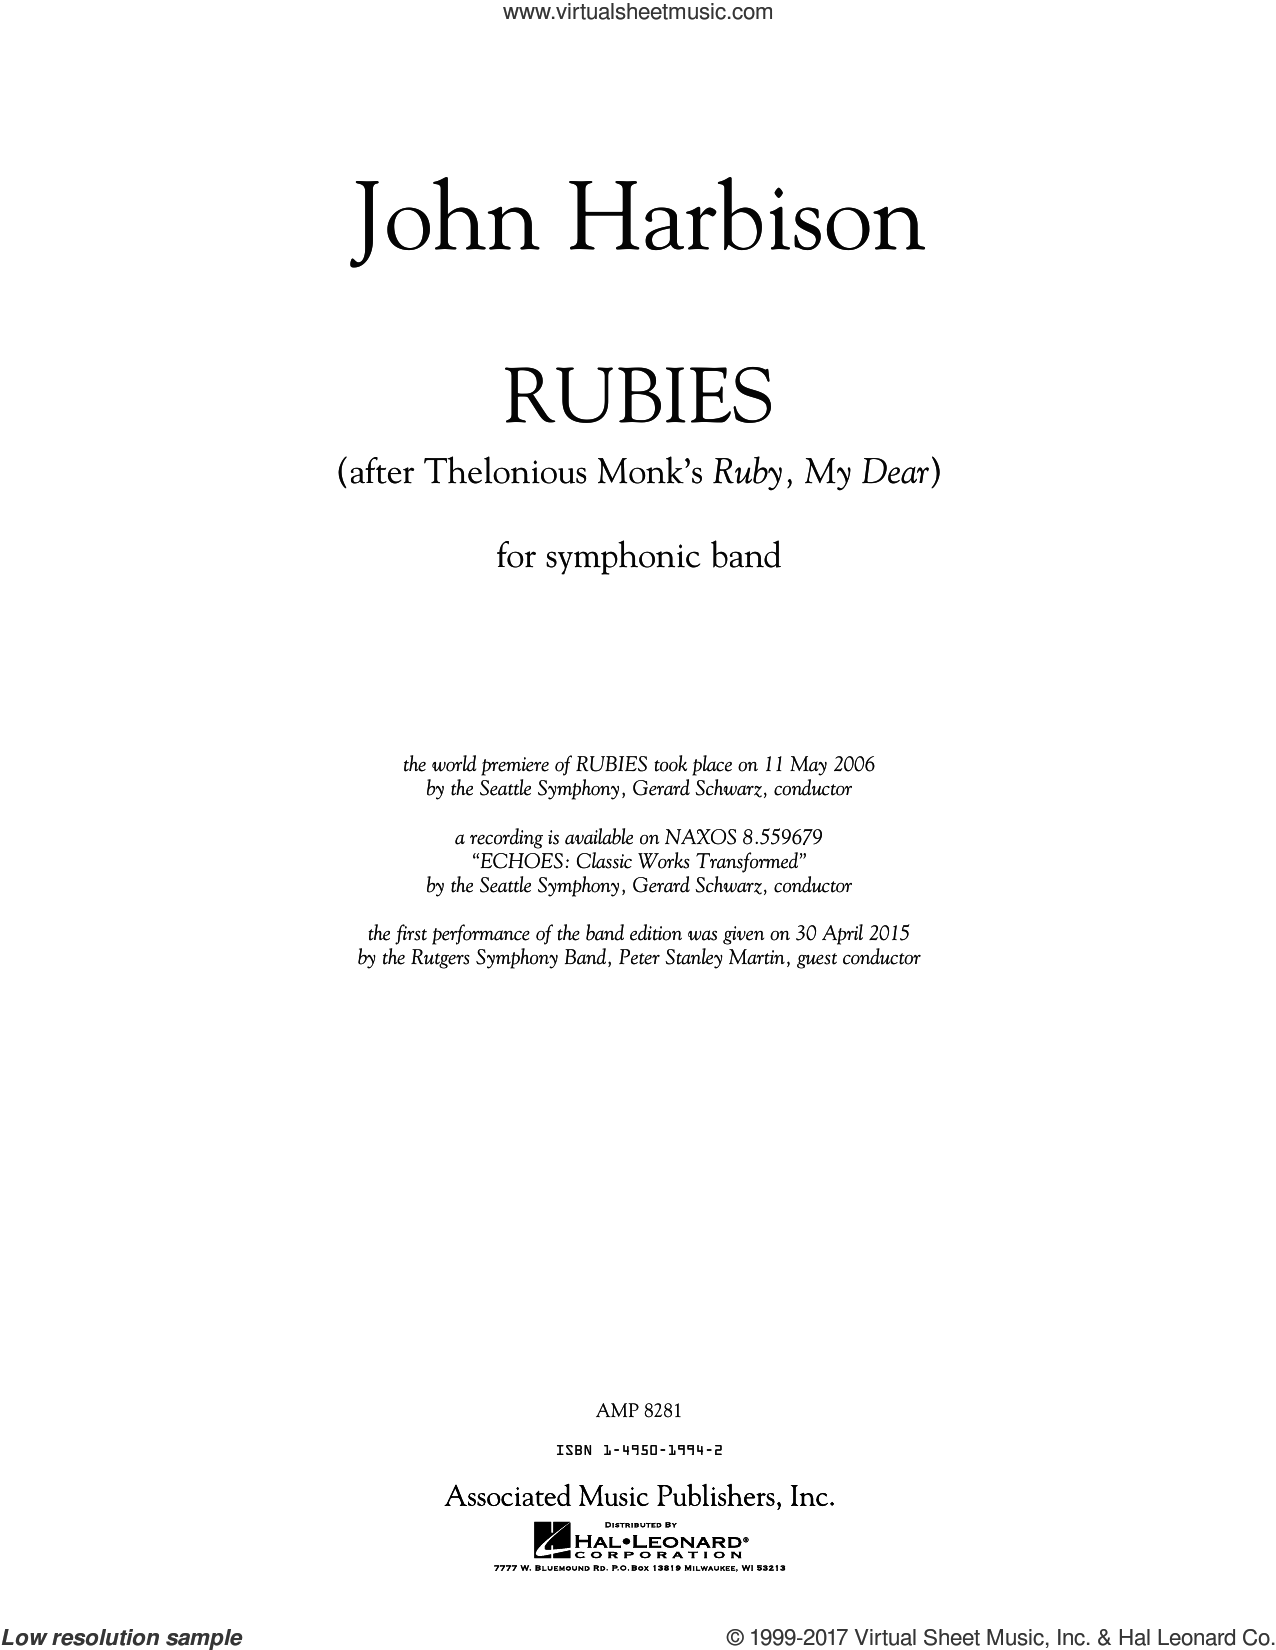 Rubies (After Thelonious Monk's 'Ruby, My Dear') (COMPLETE) sheet music for concert band by Thelonious Monk, John Harbison and Peter Stanley Martin, intermediate skill level